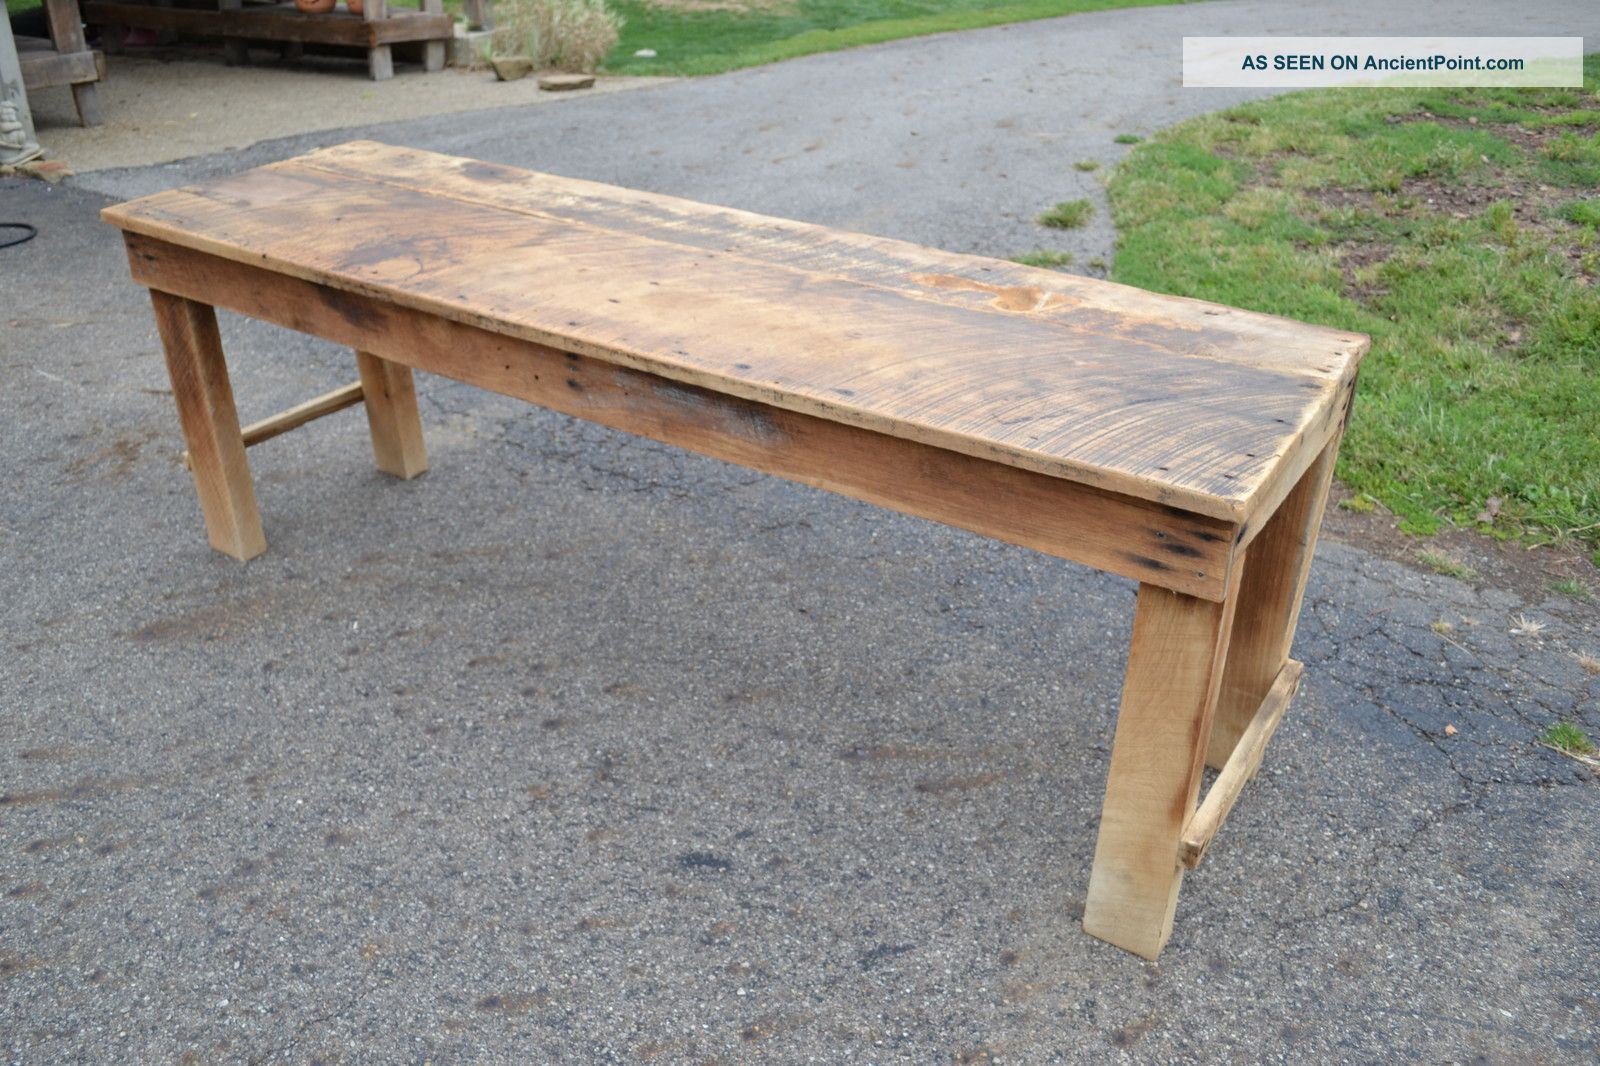 Magnificent Rustic Kitchen Table with Bench 1600 x 1066 · 332 kB · jpeg